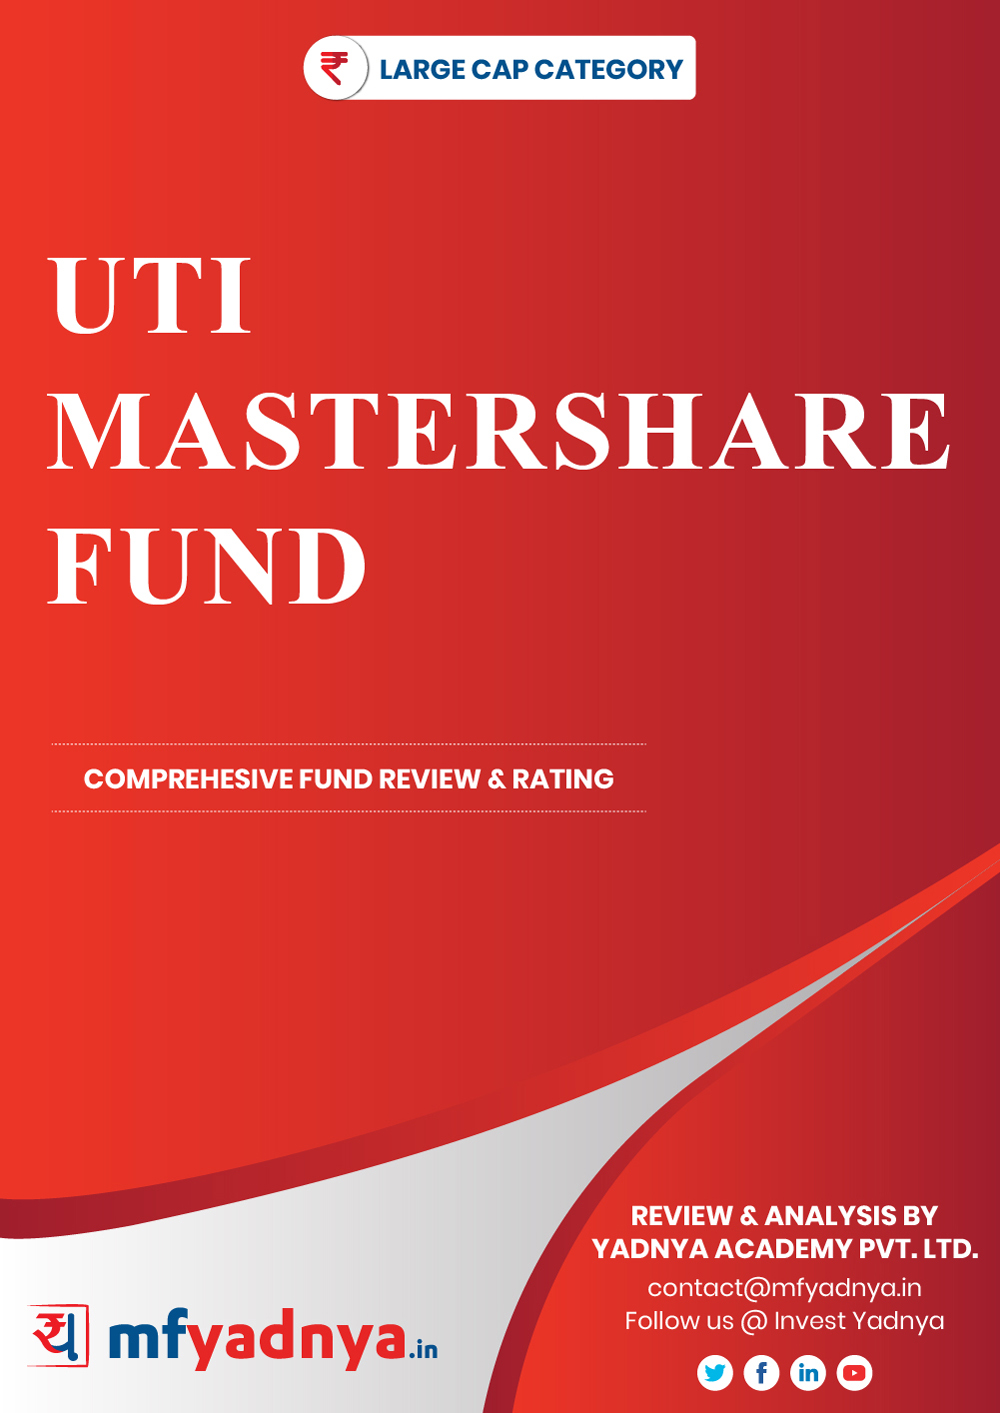 Large Cap Category Review - UTI Mastershare Fund. Most Comprehensive and detailed MF review based on Yadnya's proprietary methodology of Green, Yellow & Red Star. Detailed Analysis & Review based on August 31st, 2019 data.